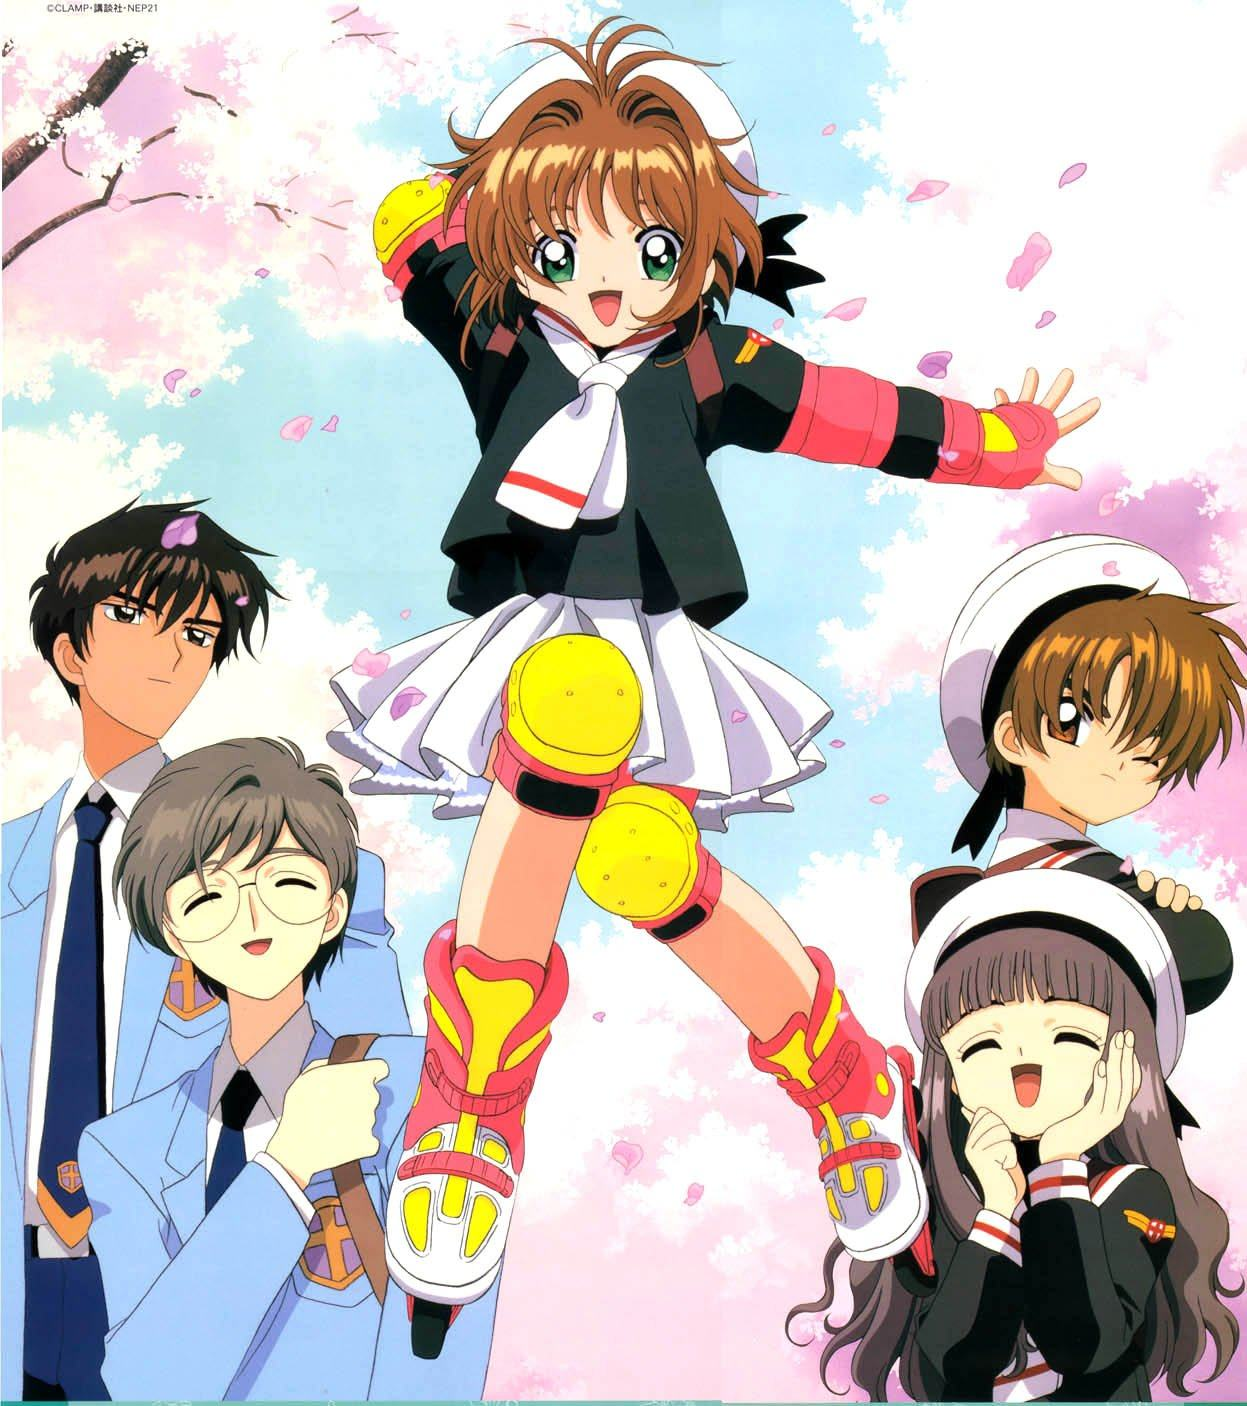 Card Captor Sakura anime